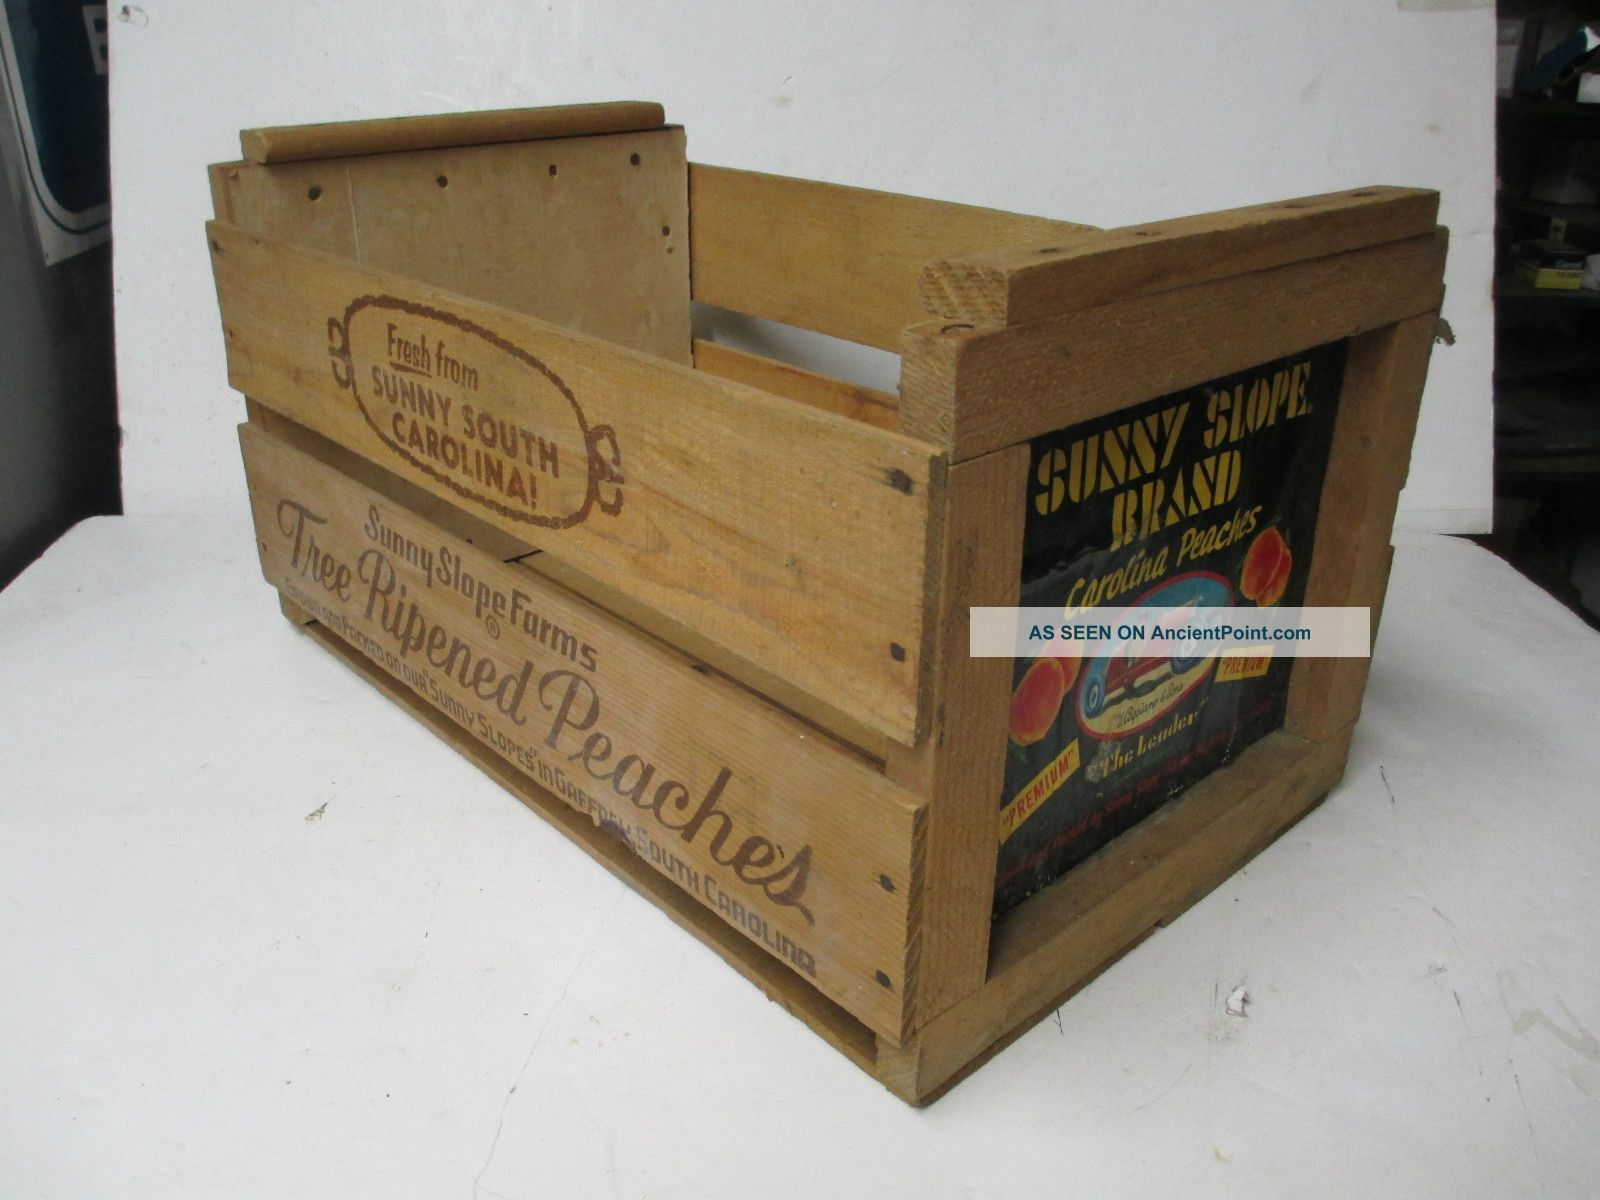 Vintage Wooden Peach Crate Sunny Slope Farms Brand Carolina Fruit Crates Sunny Slope Farm Vintage